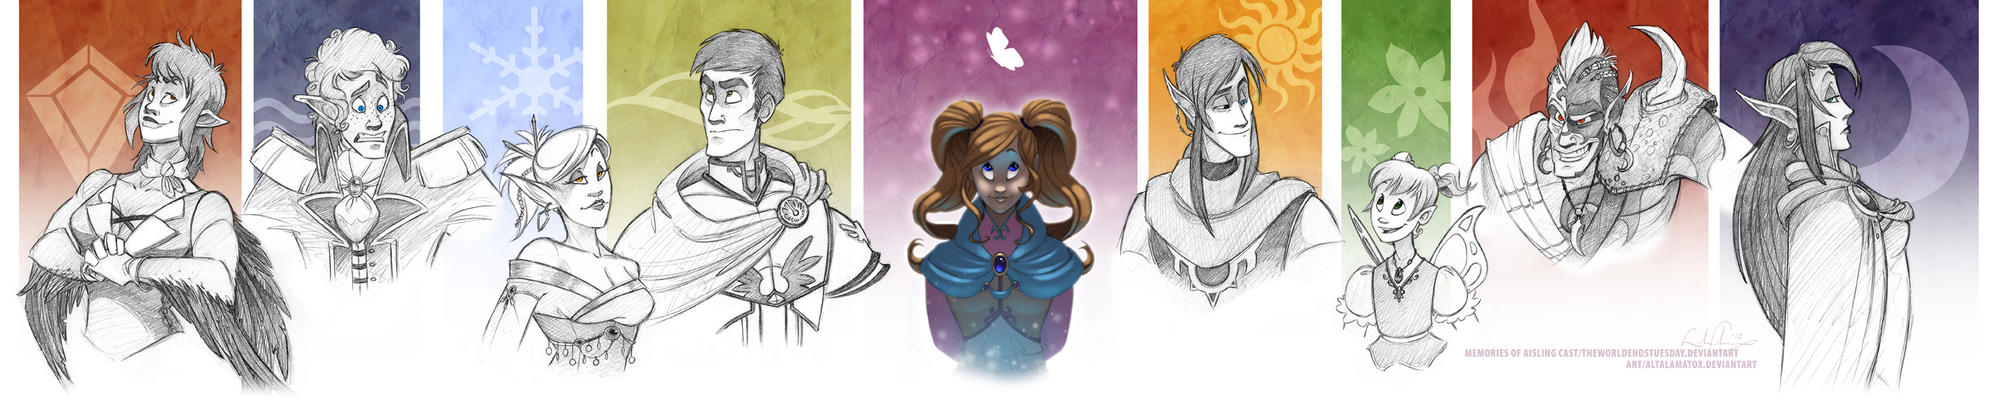 Memories of Aisling Lineup by Altalamatox